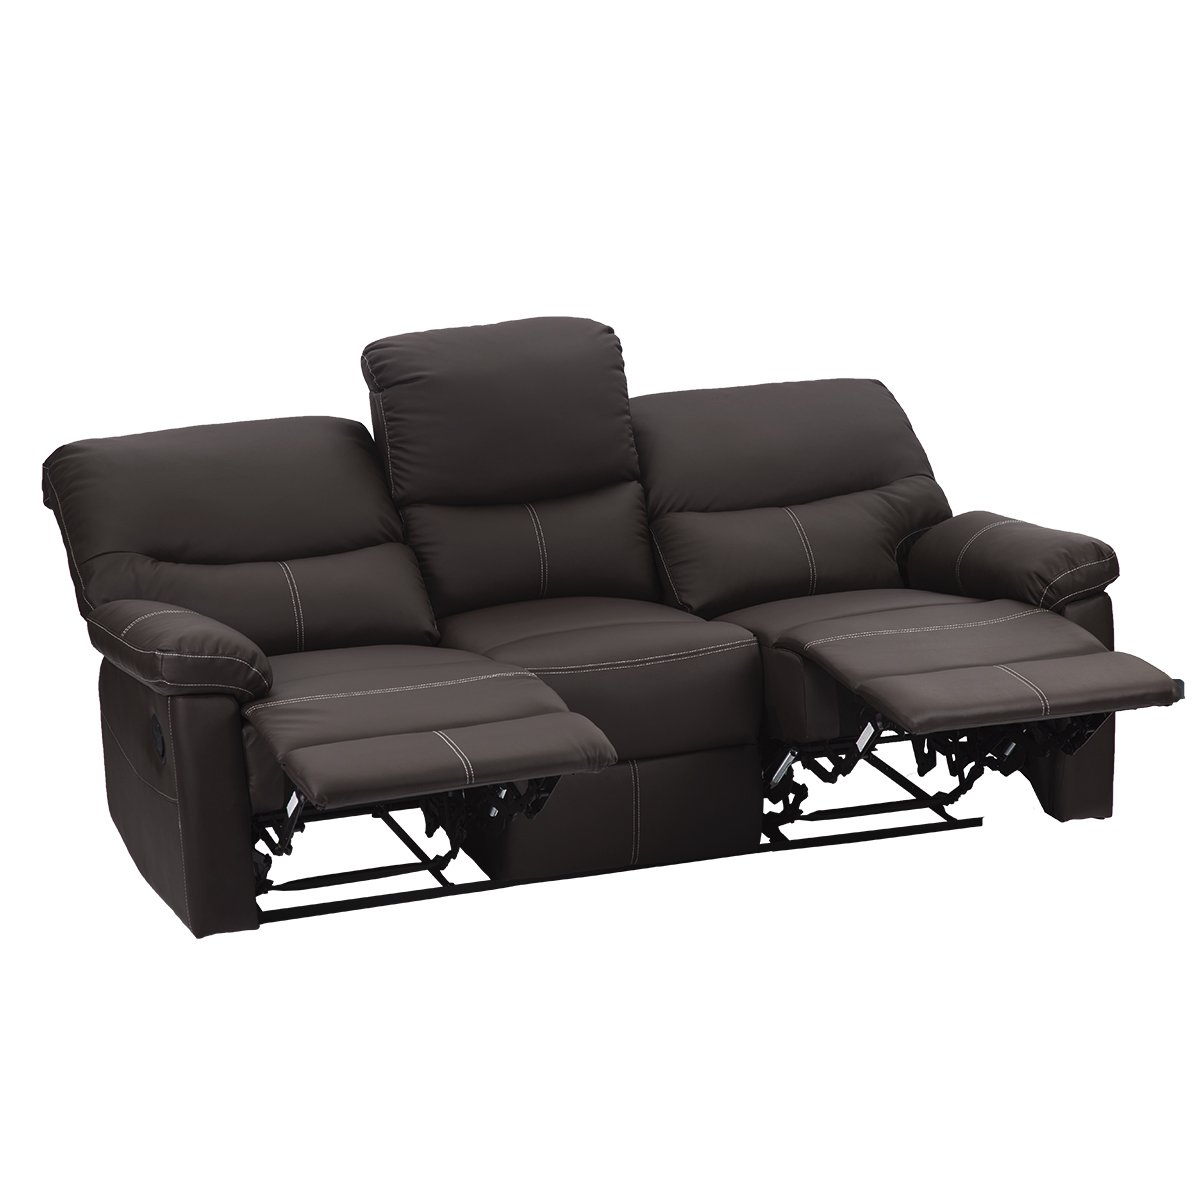 Amazon.com: BestMassage reclinable conjunto de sofás 3 ...